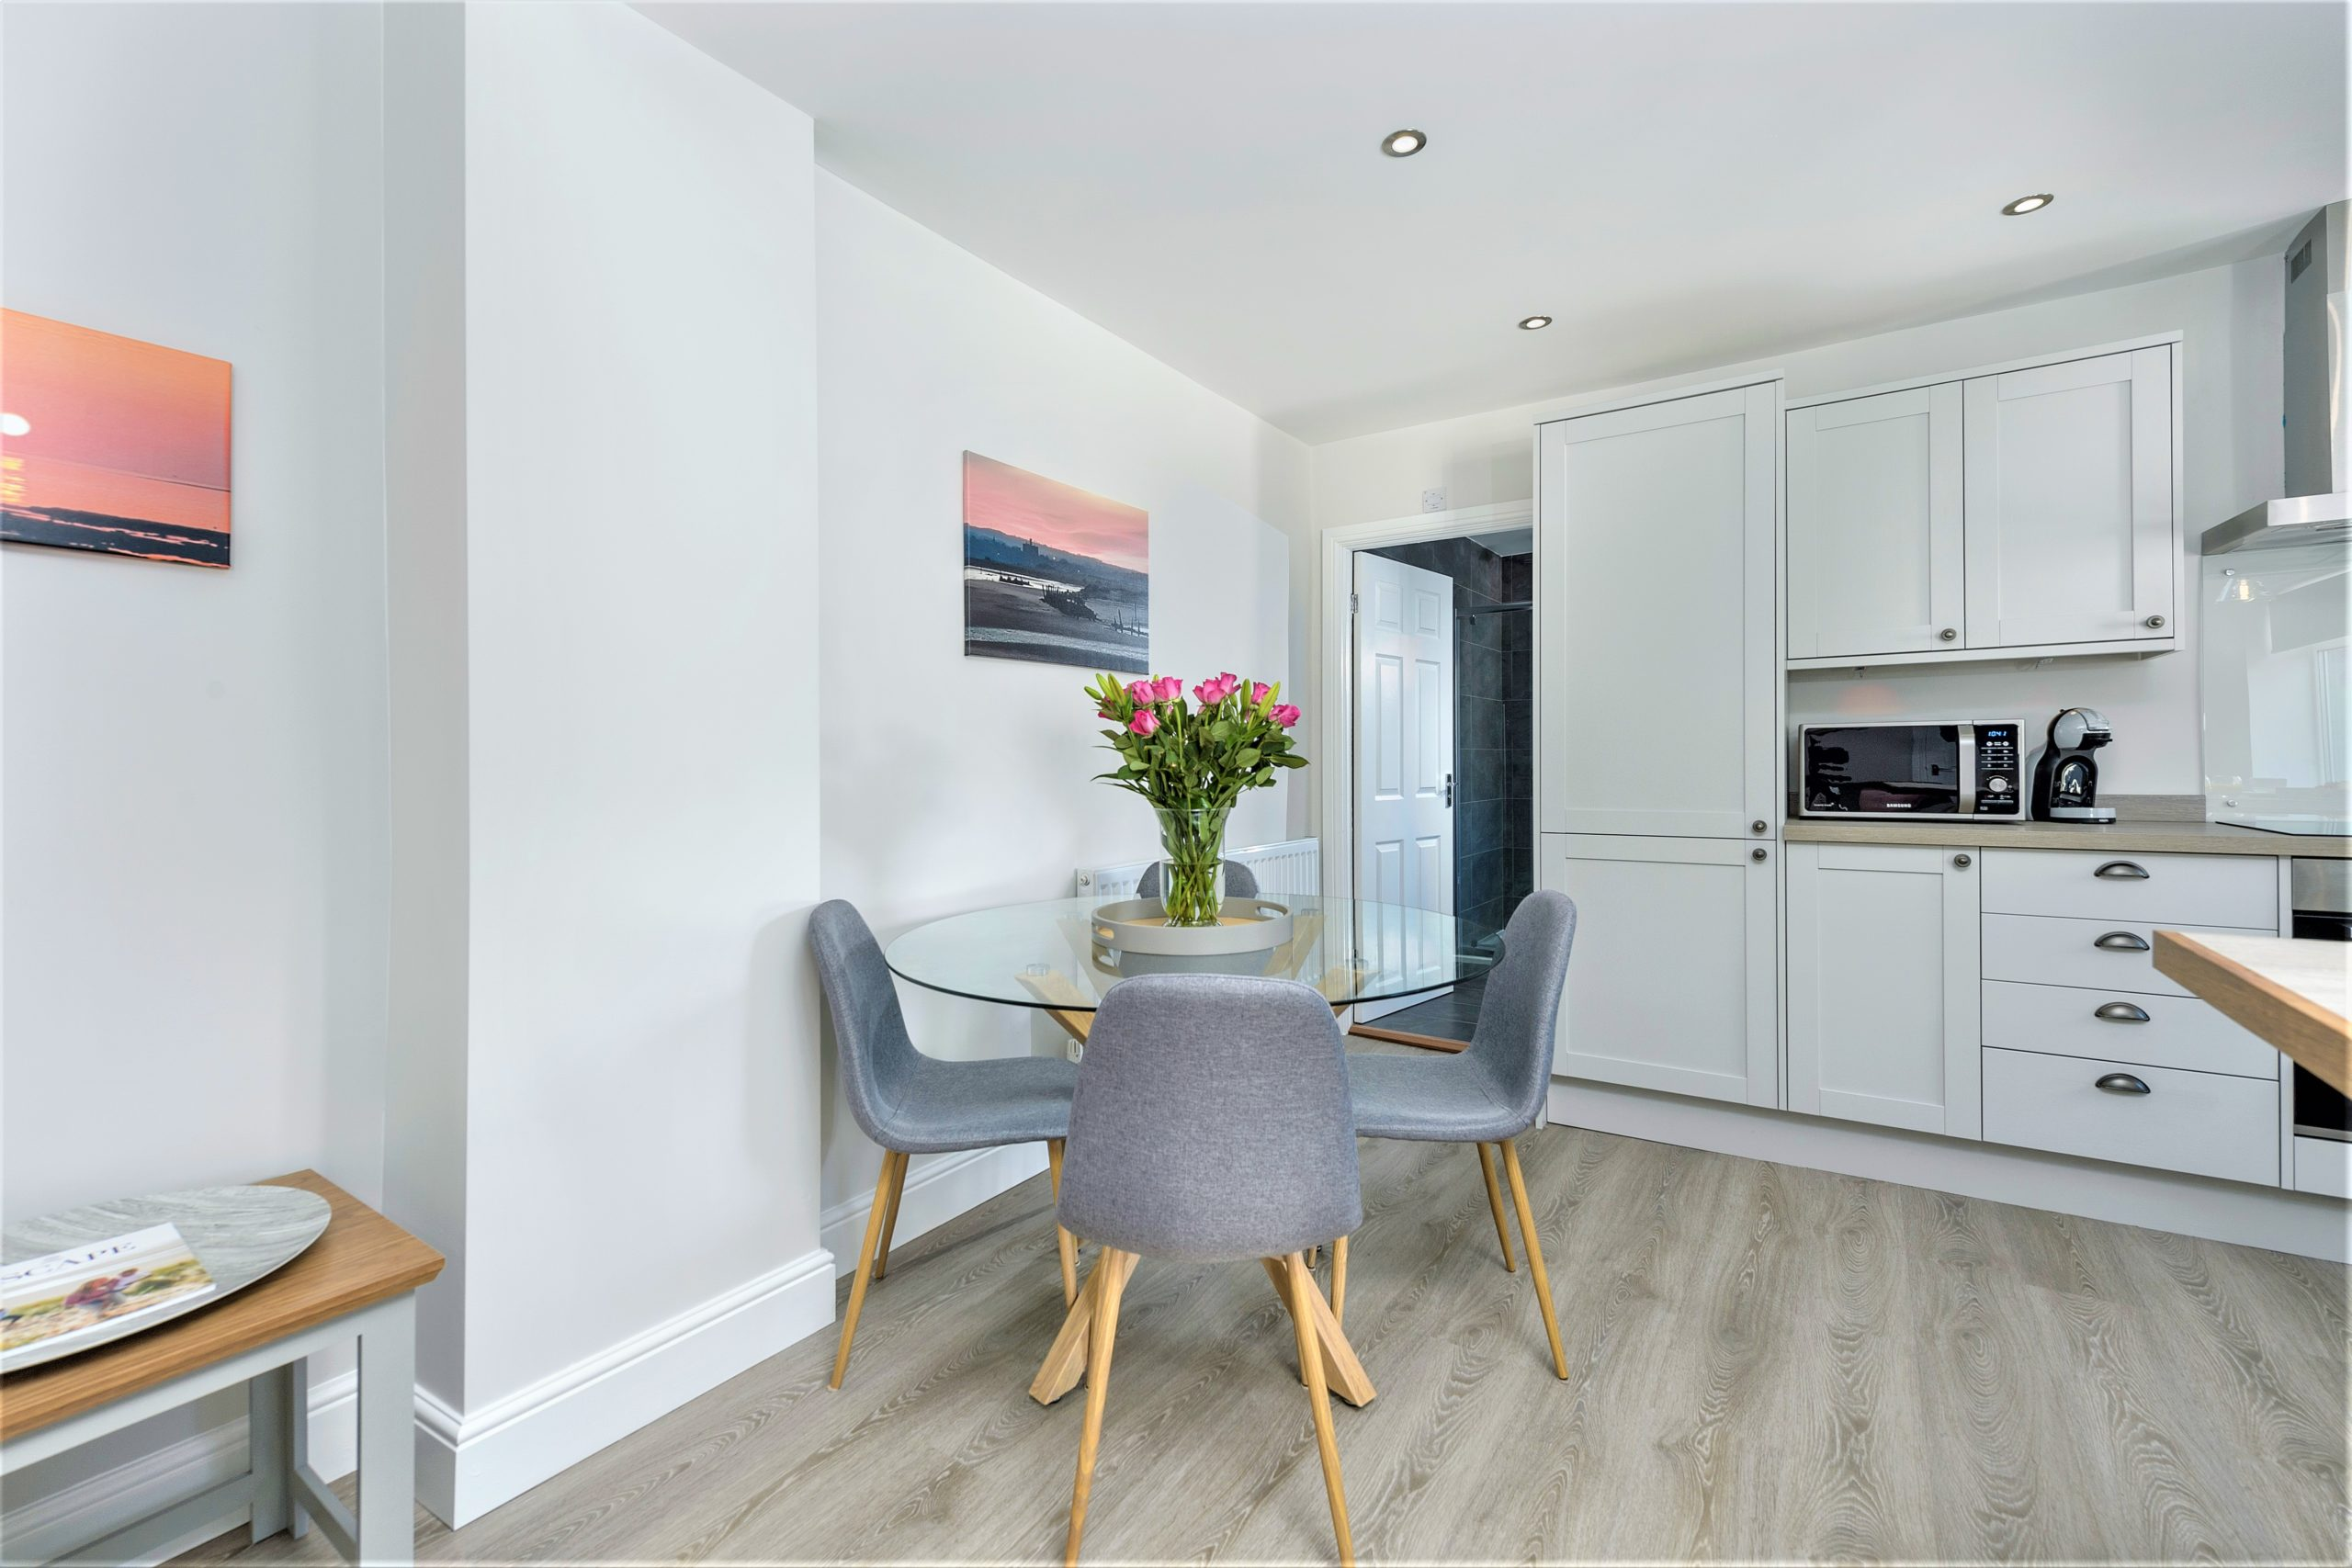 Open plan dining for families or couples